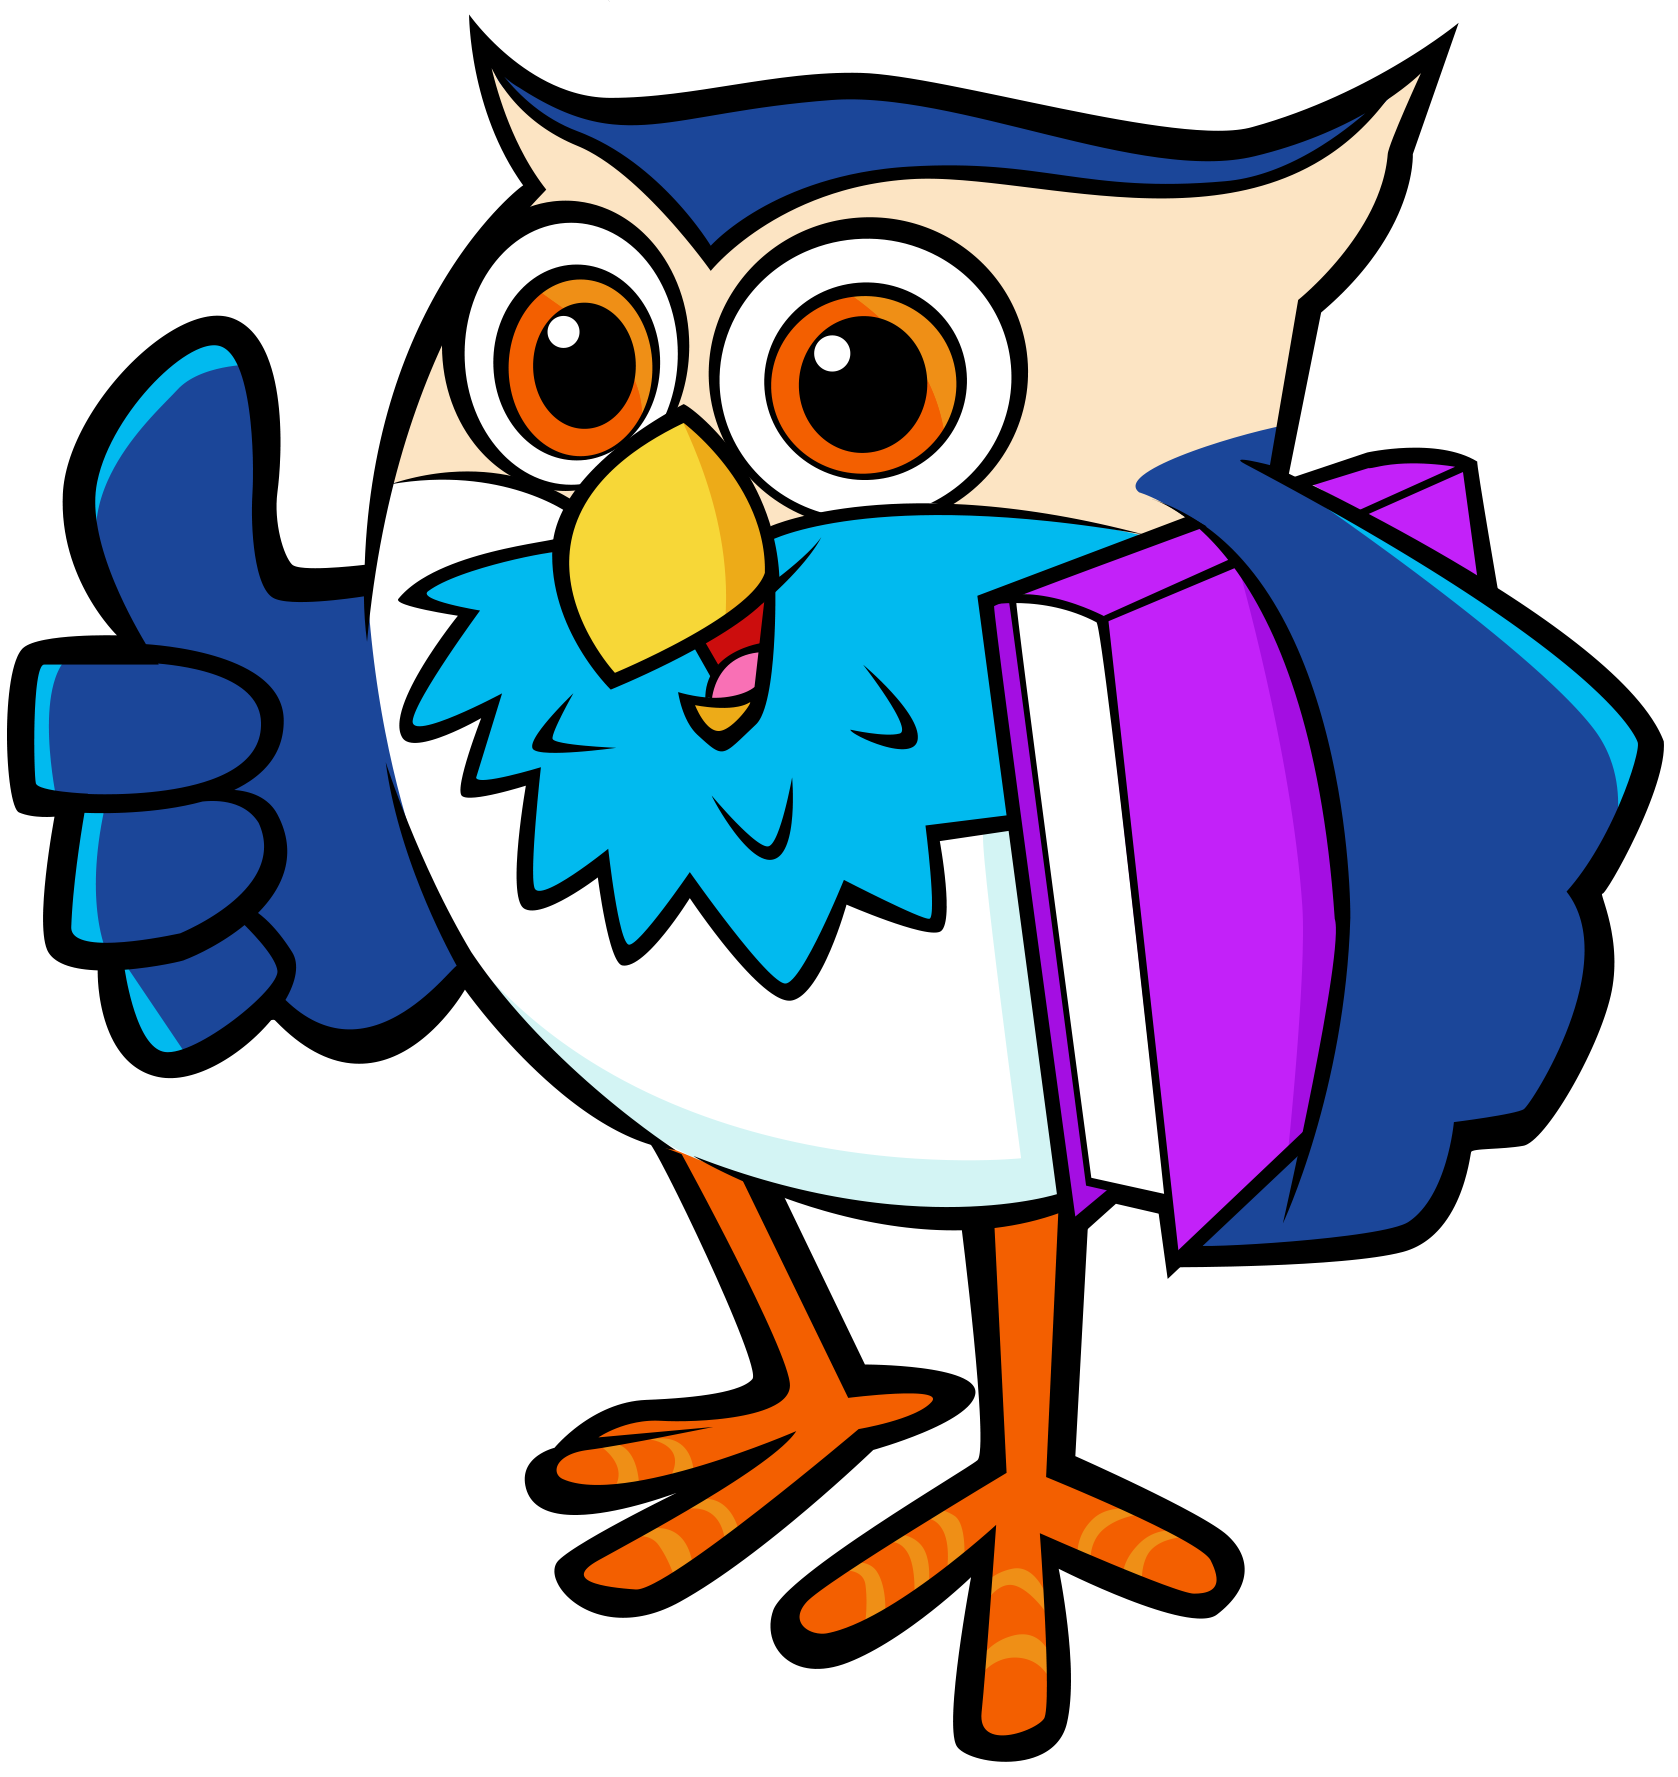 Jobs clipart owl. Research papers for dummies